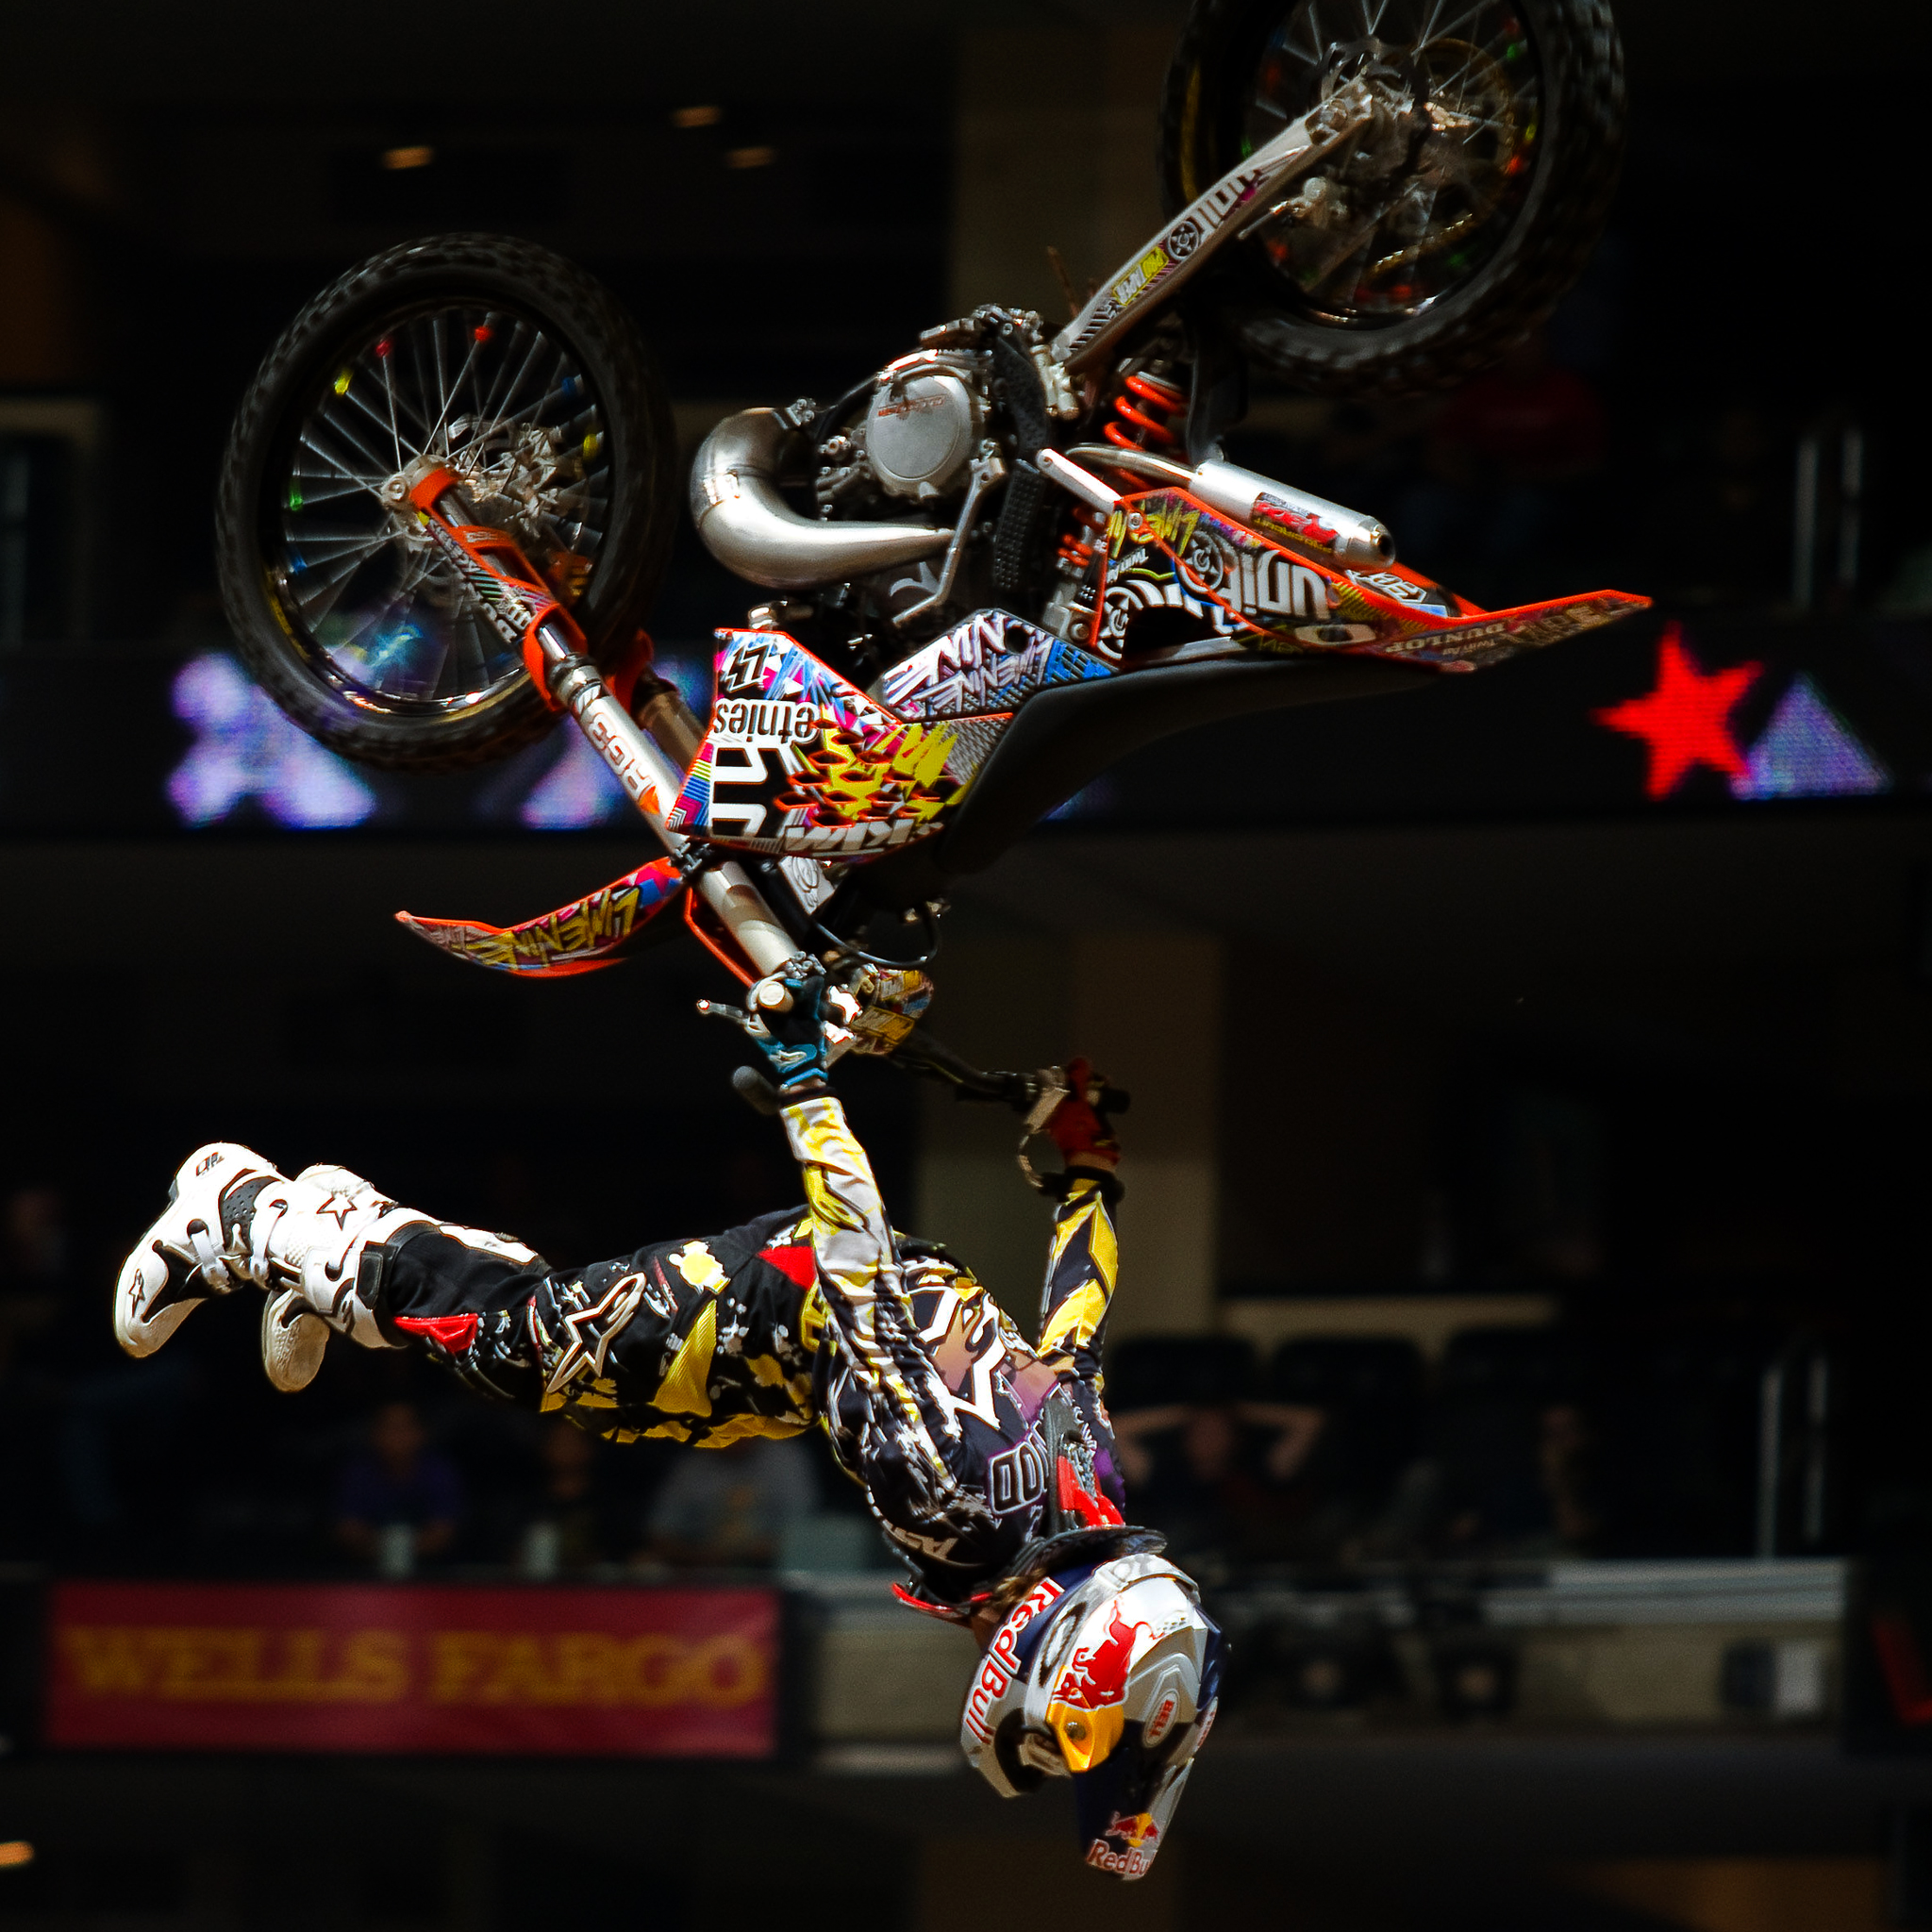 X-Games-Levi-Sherwood-3Wallpapers-iPad-Retina